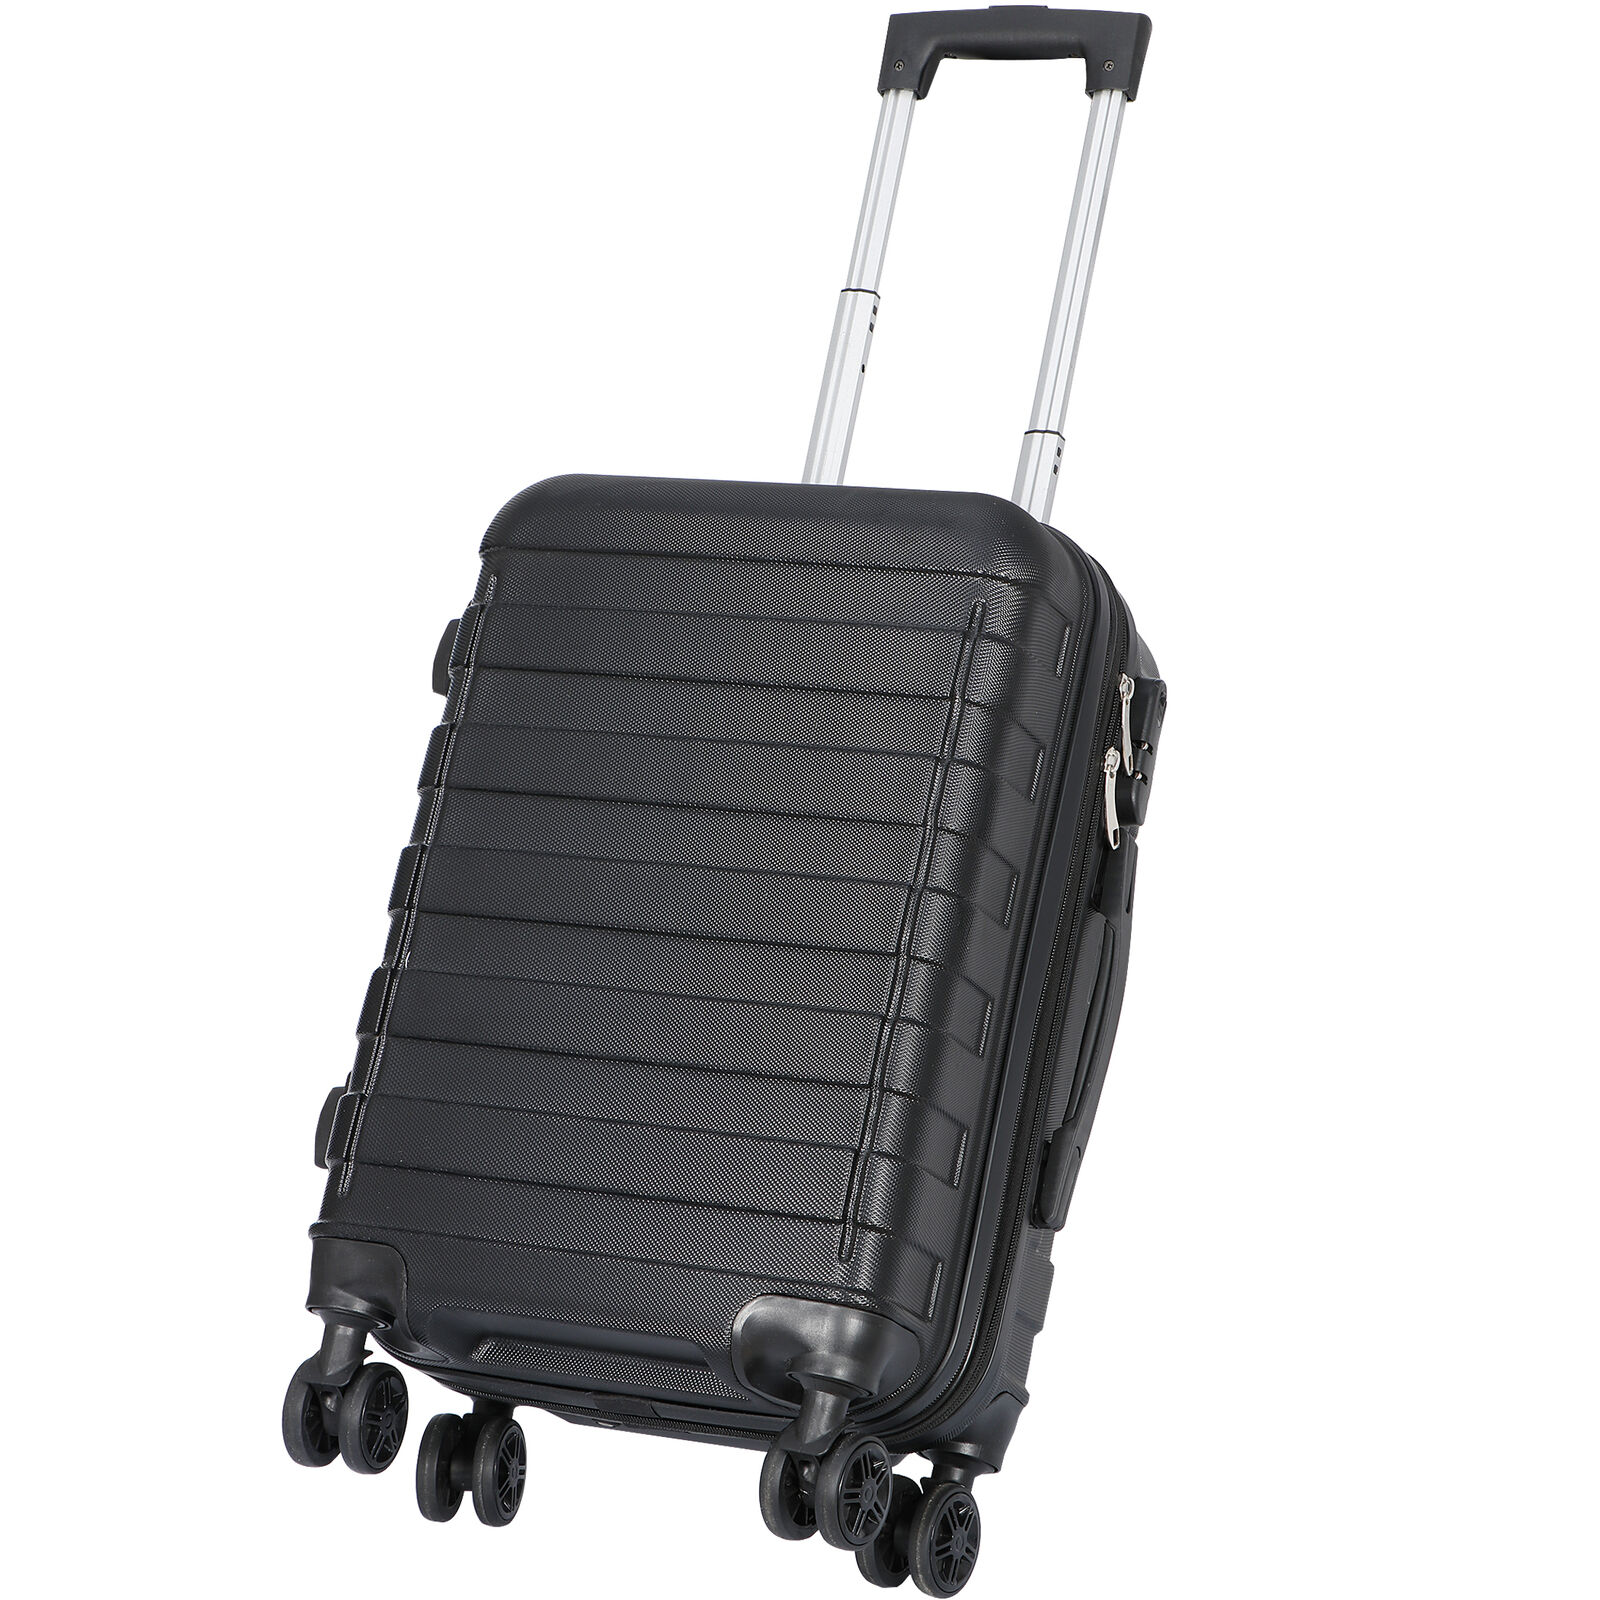 21 Inch Hardside Carry Luggage Carry-On Suitcase Luggage with Spinner Wheels Luggage